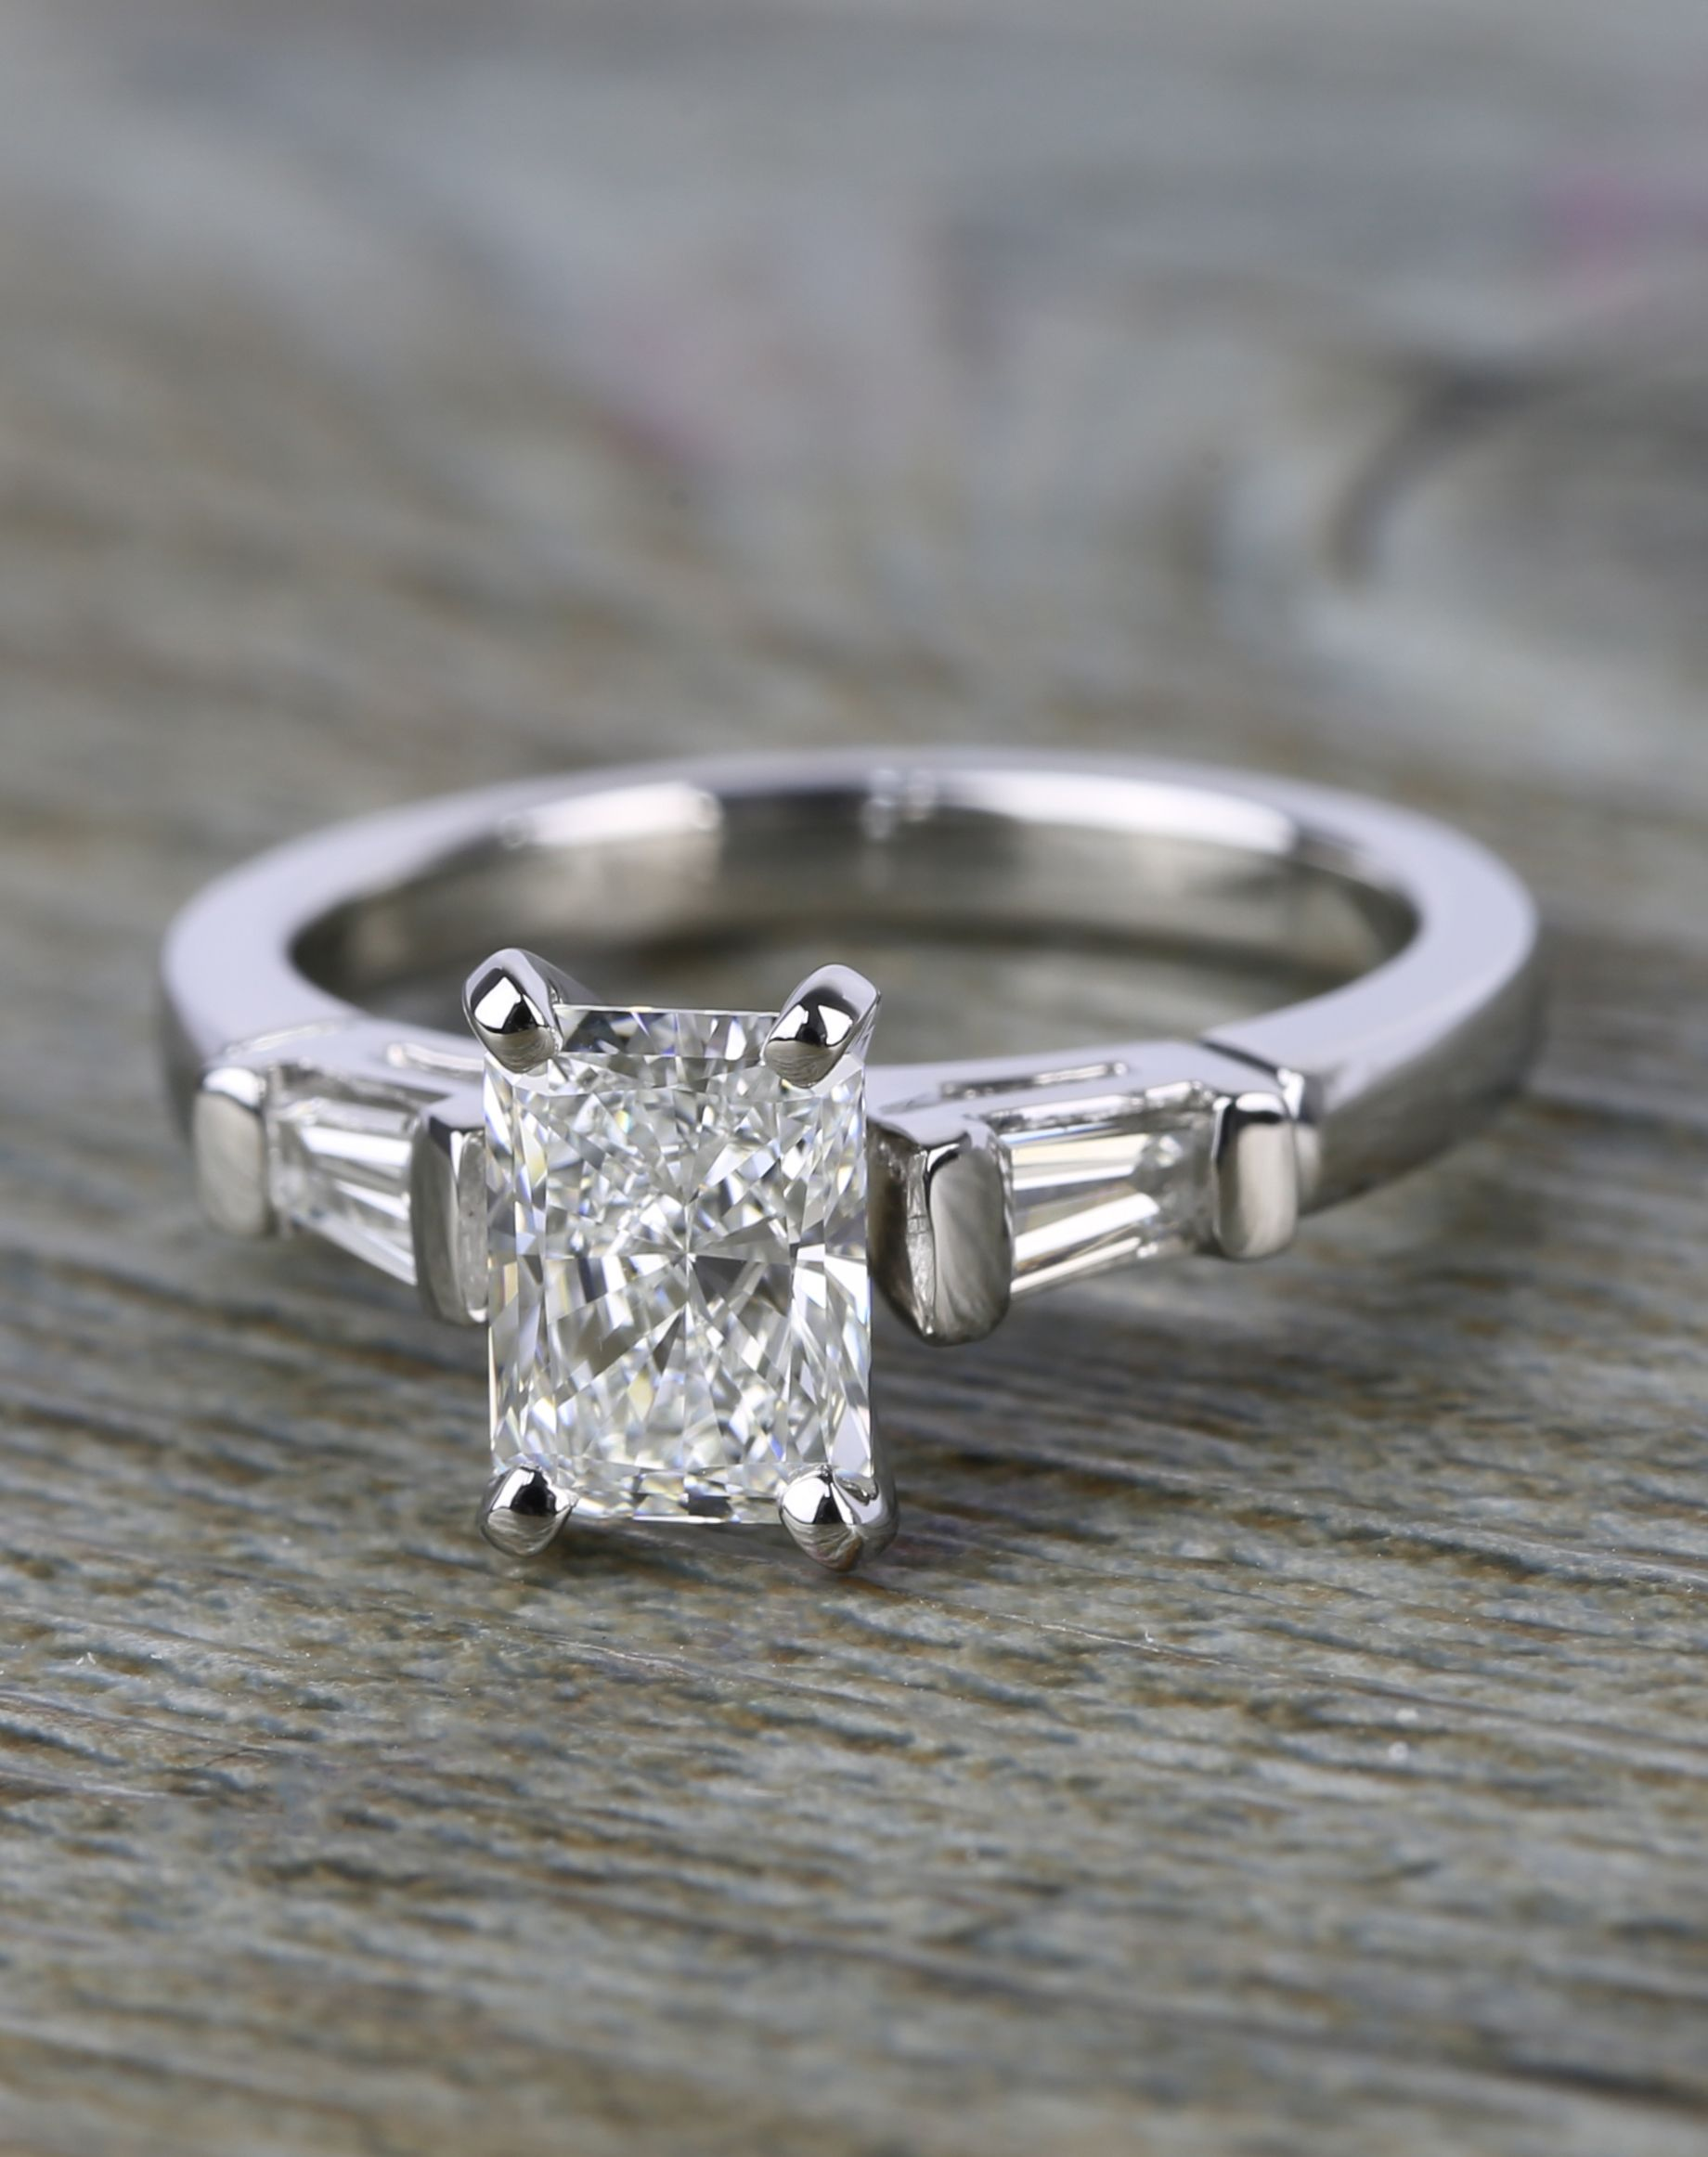 9ce68c8e4d3917 The colorless radiant cut diamond in this platinum engagement ring  completely modernizes this once vintage look. Tapered baguettes frame the center  diamond.